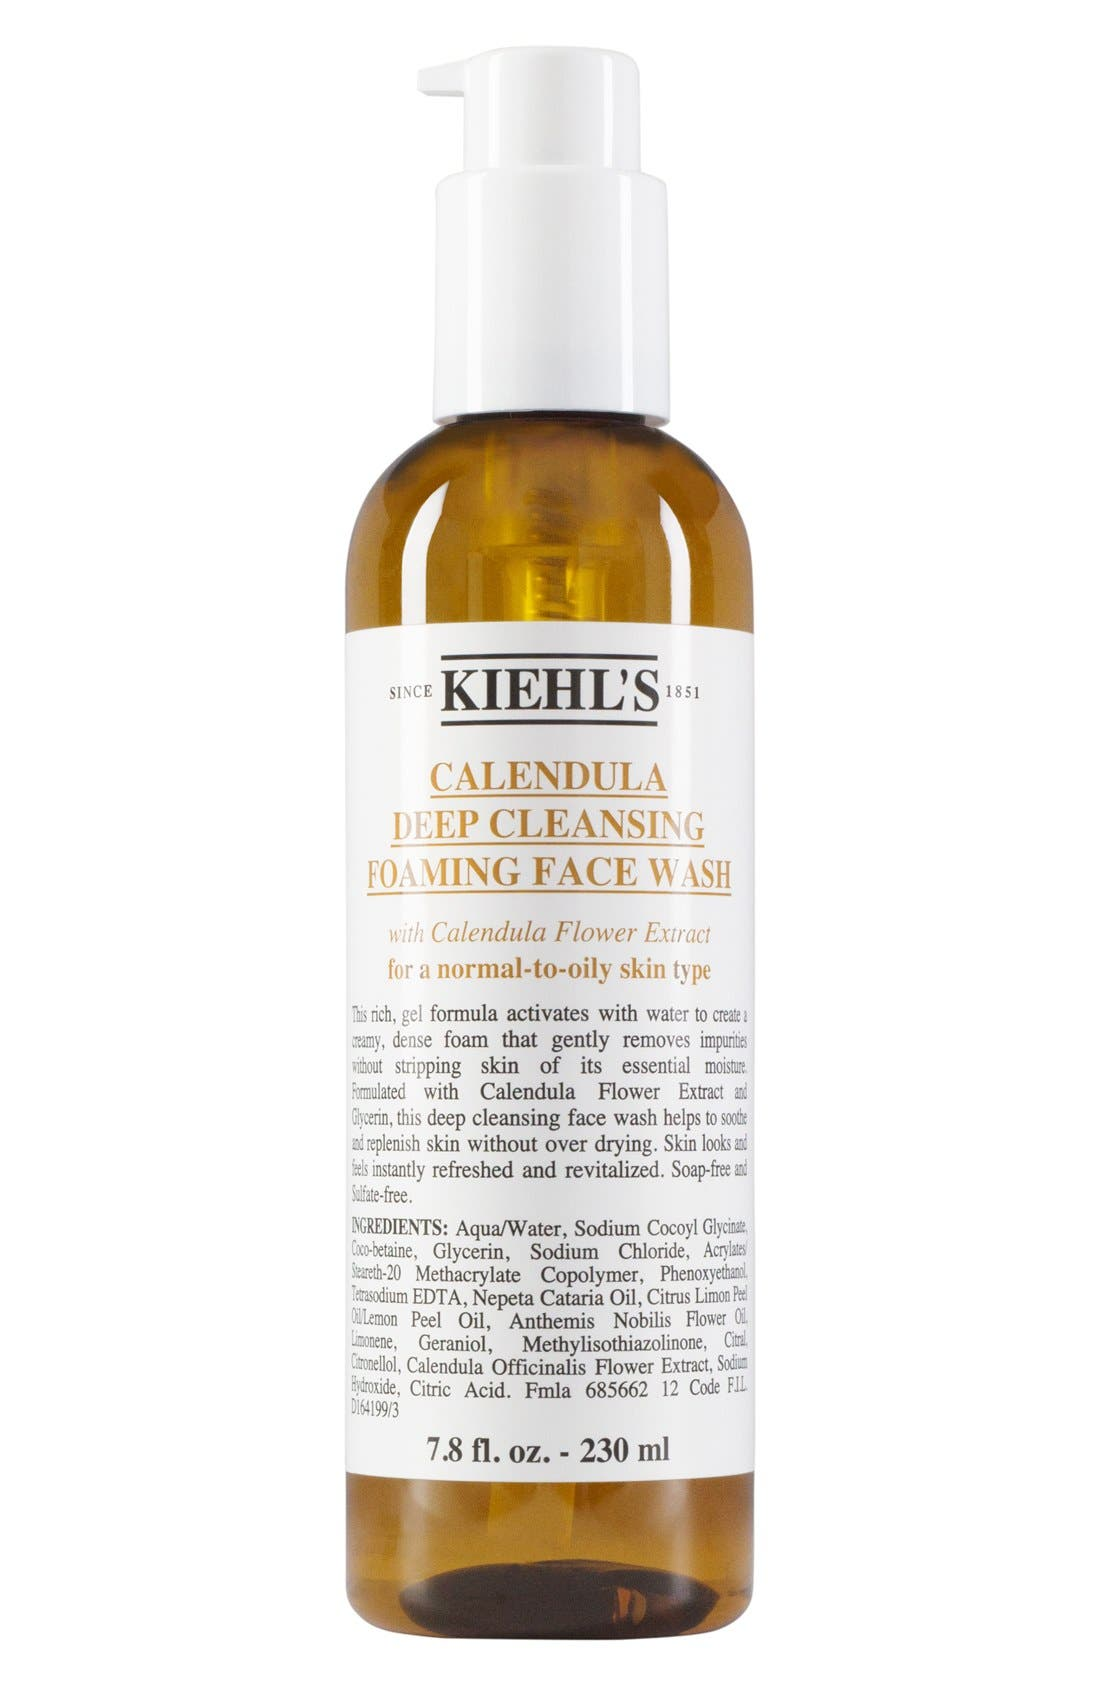 Calendula Deep Cleansing Foaming Face Wash for Normal-to-Oily Skin,                             Main thumbnail 1, color,                             NO COLOR